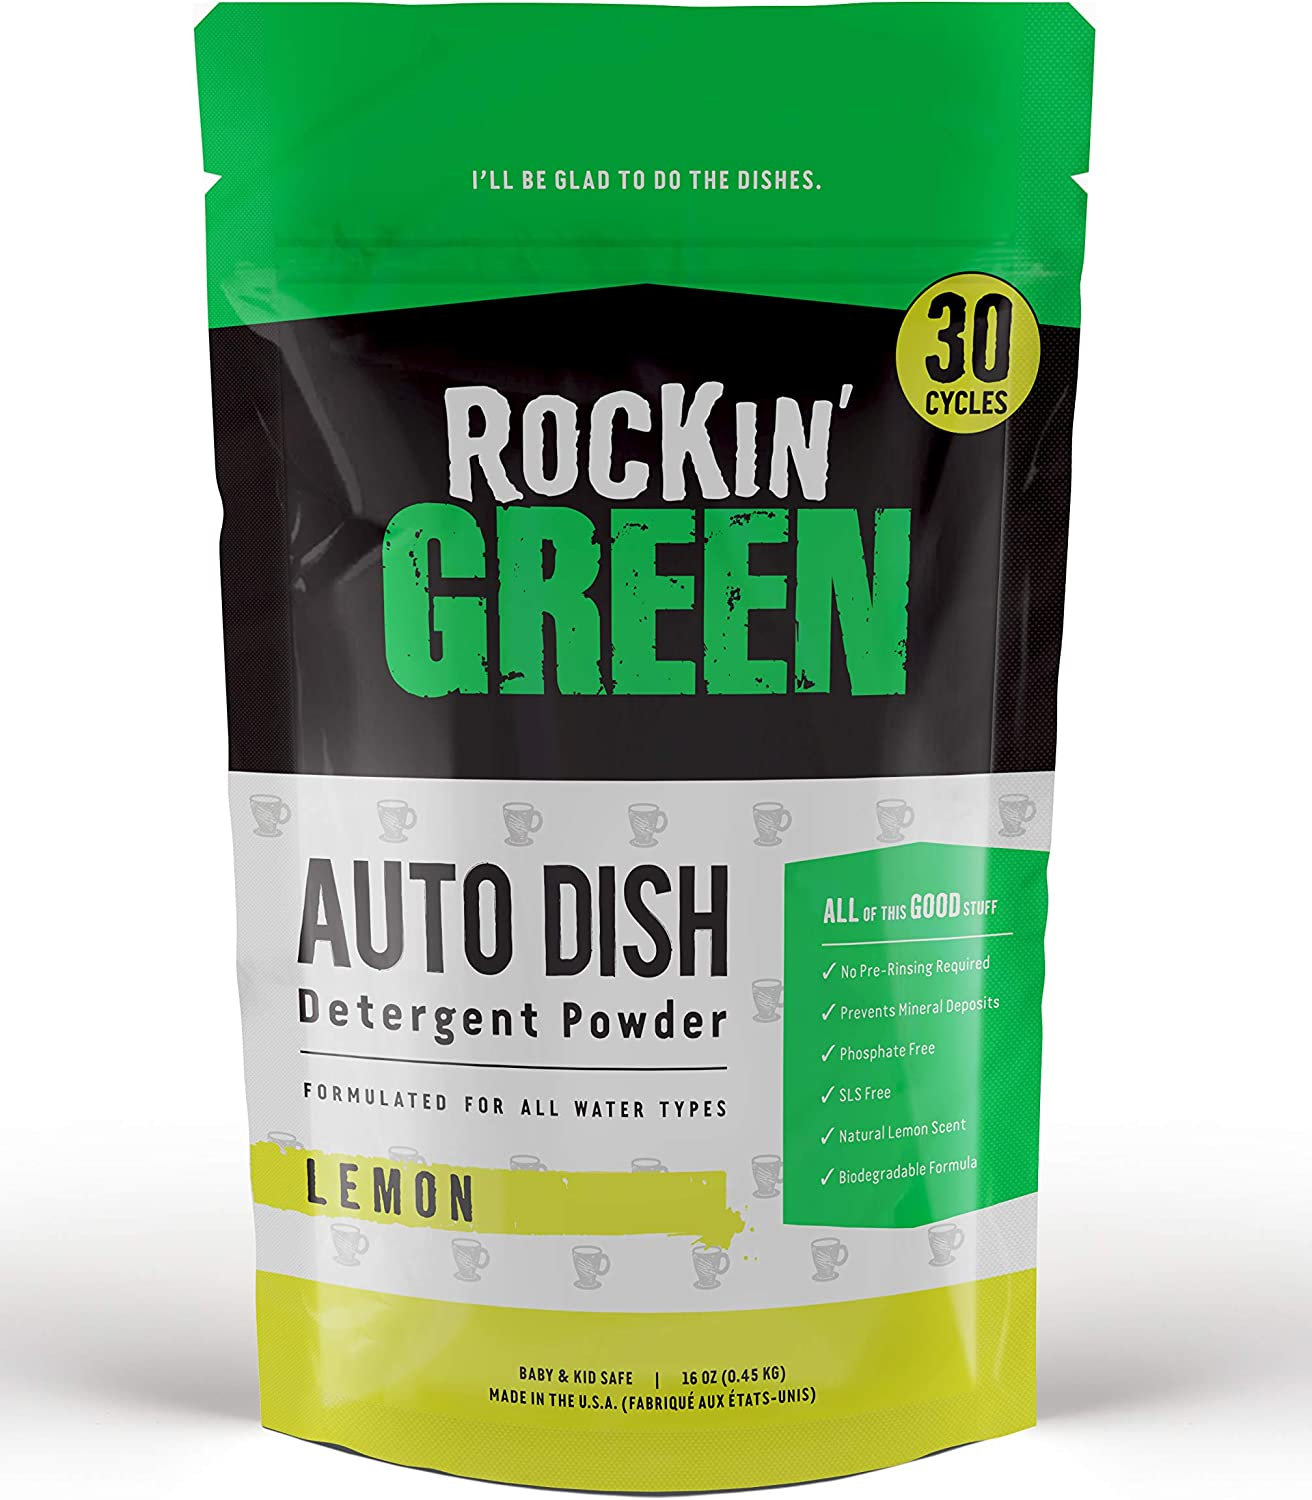 Rockin' Green Natural Dishwasher Detergent | Eco-Friendly, Biodegradable, No Pre-Rinsing | Lemon Scent - 30 loads